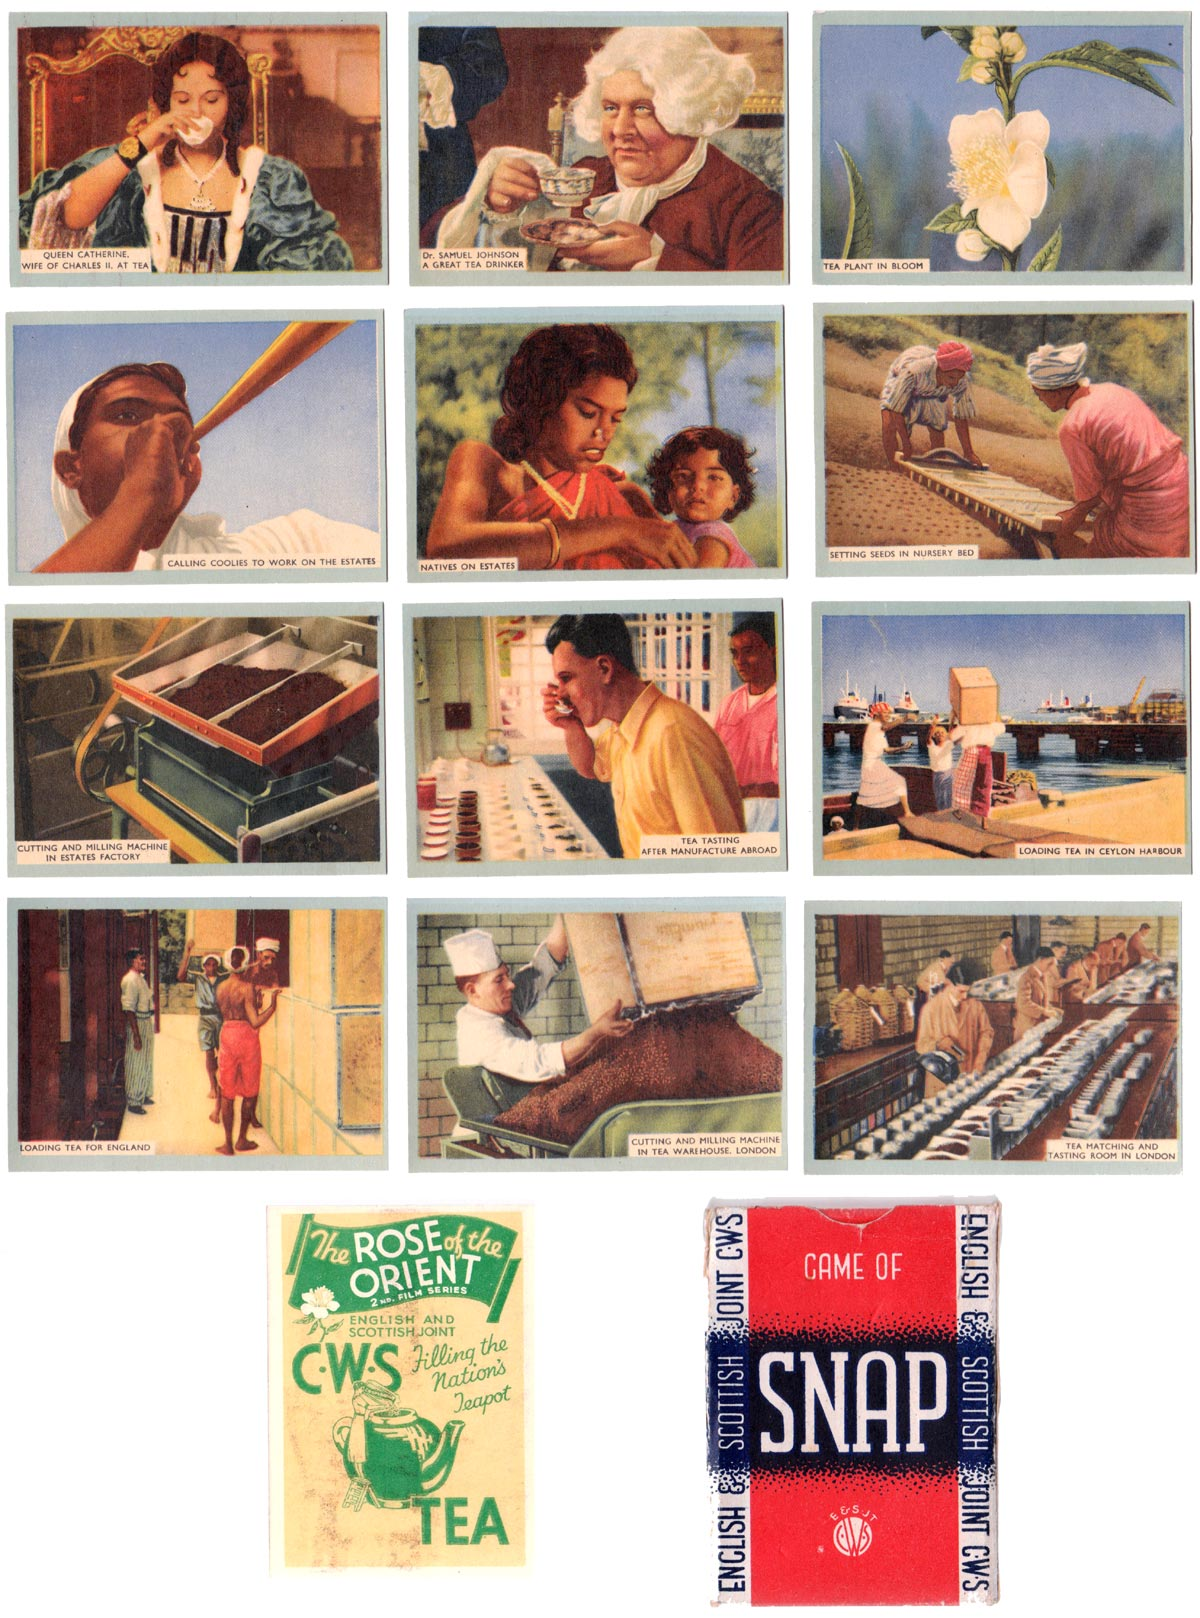 2nd Film Series 'Game of Snap' published by the English & Scottish Joint C.W.S., 1930s